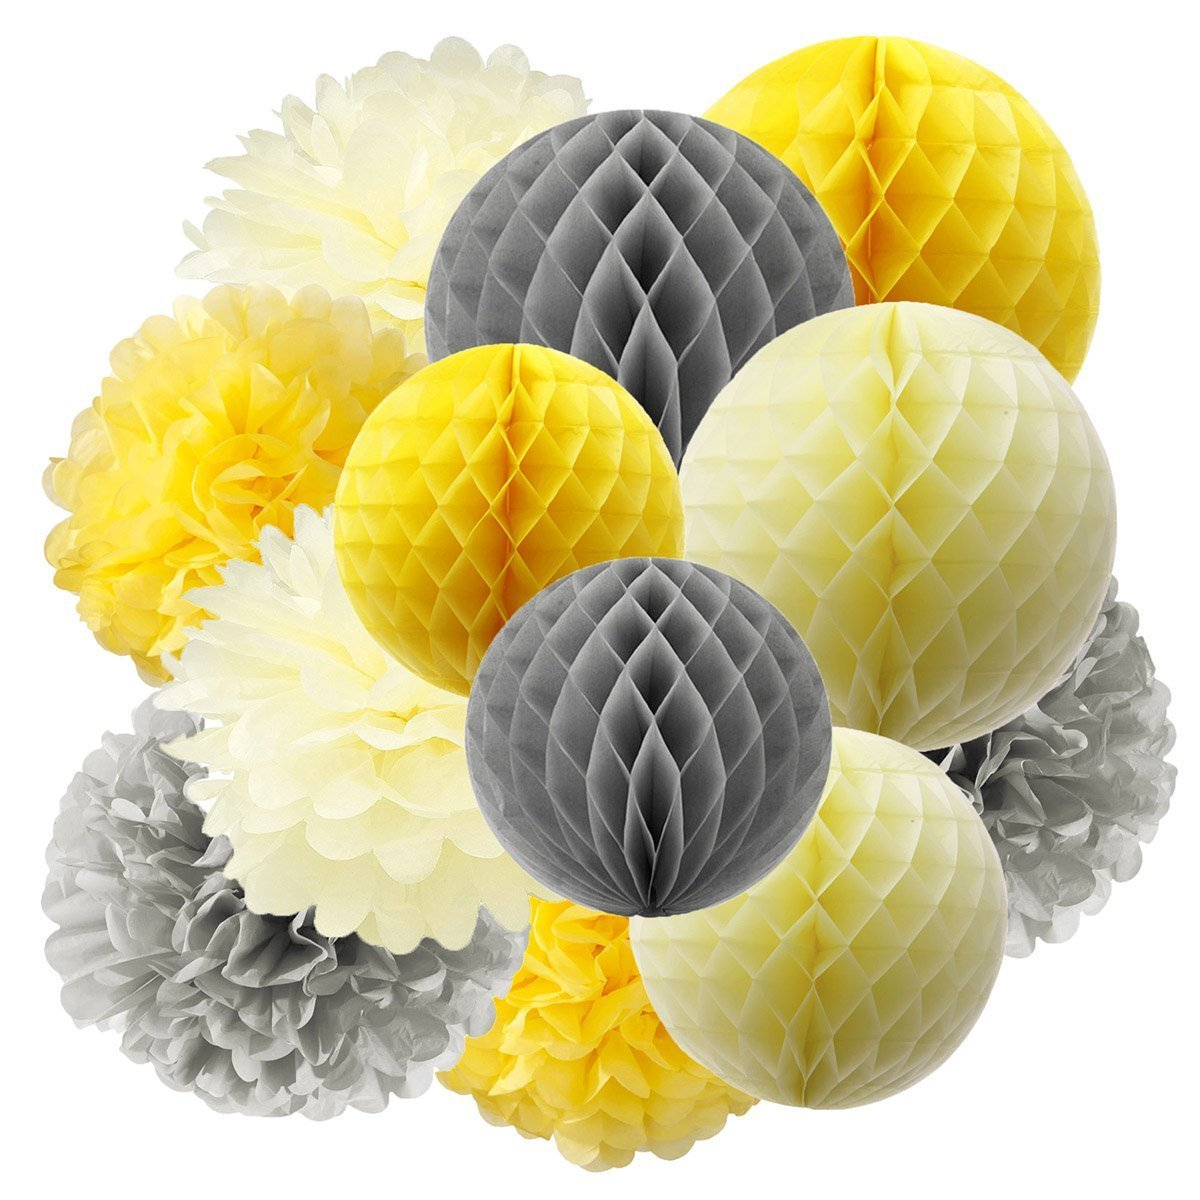 Furuix Yellow Grey Cream Tissue Paper Honeycomb Balls Tissue Paper Pom Poms for Baby Shower Bridal Shower Birthday Decorations Wedding Decor Party Decor Wall Hanging Decoration Yellow Decor